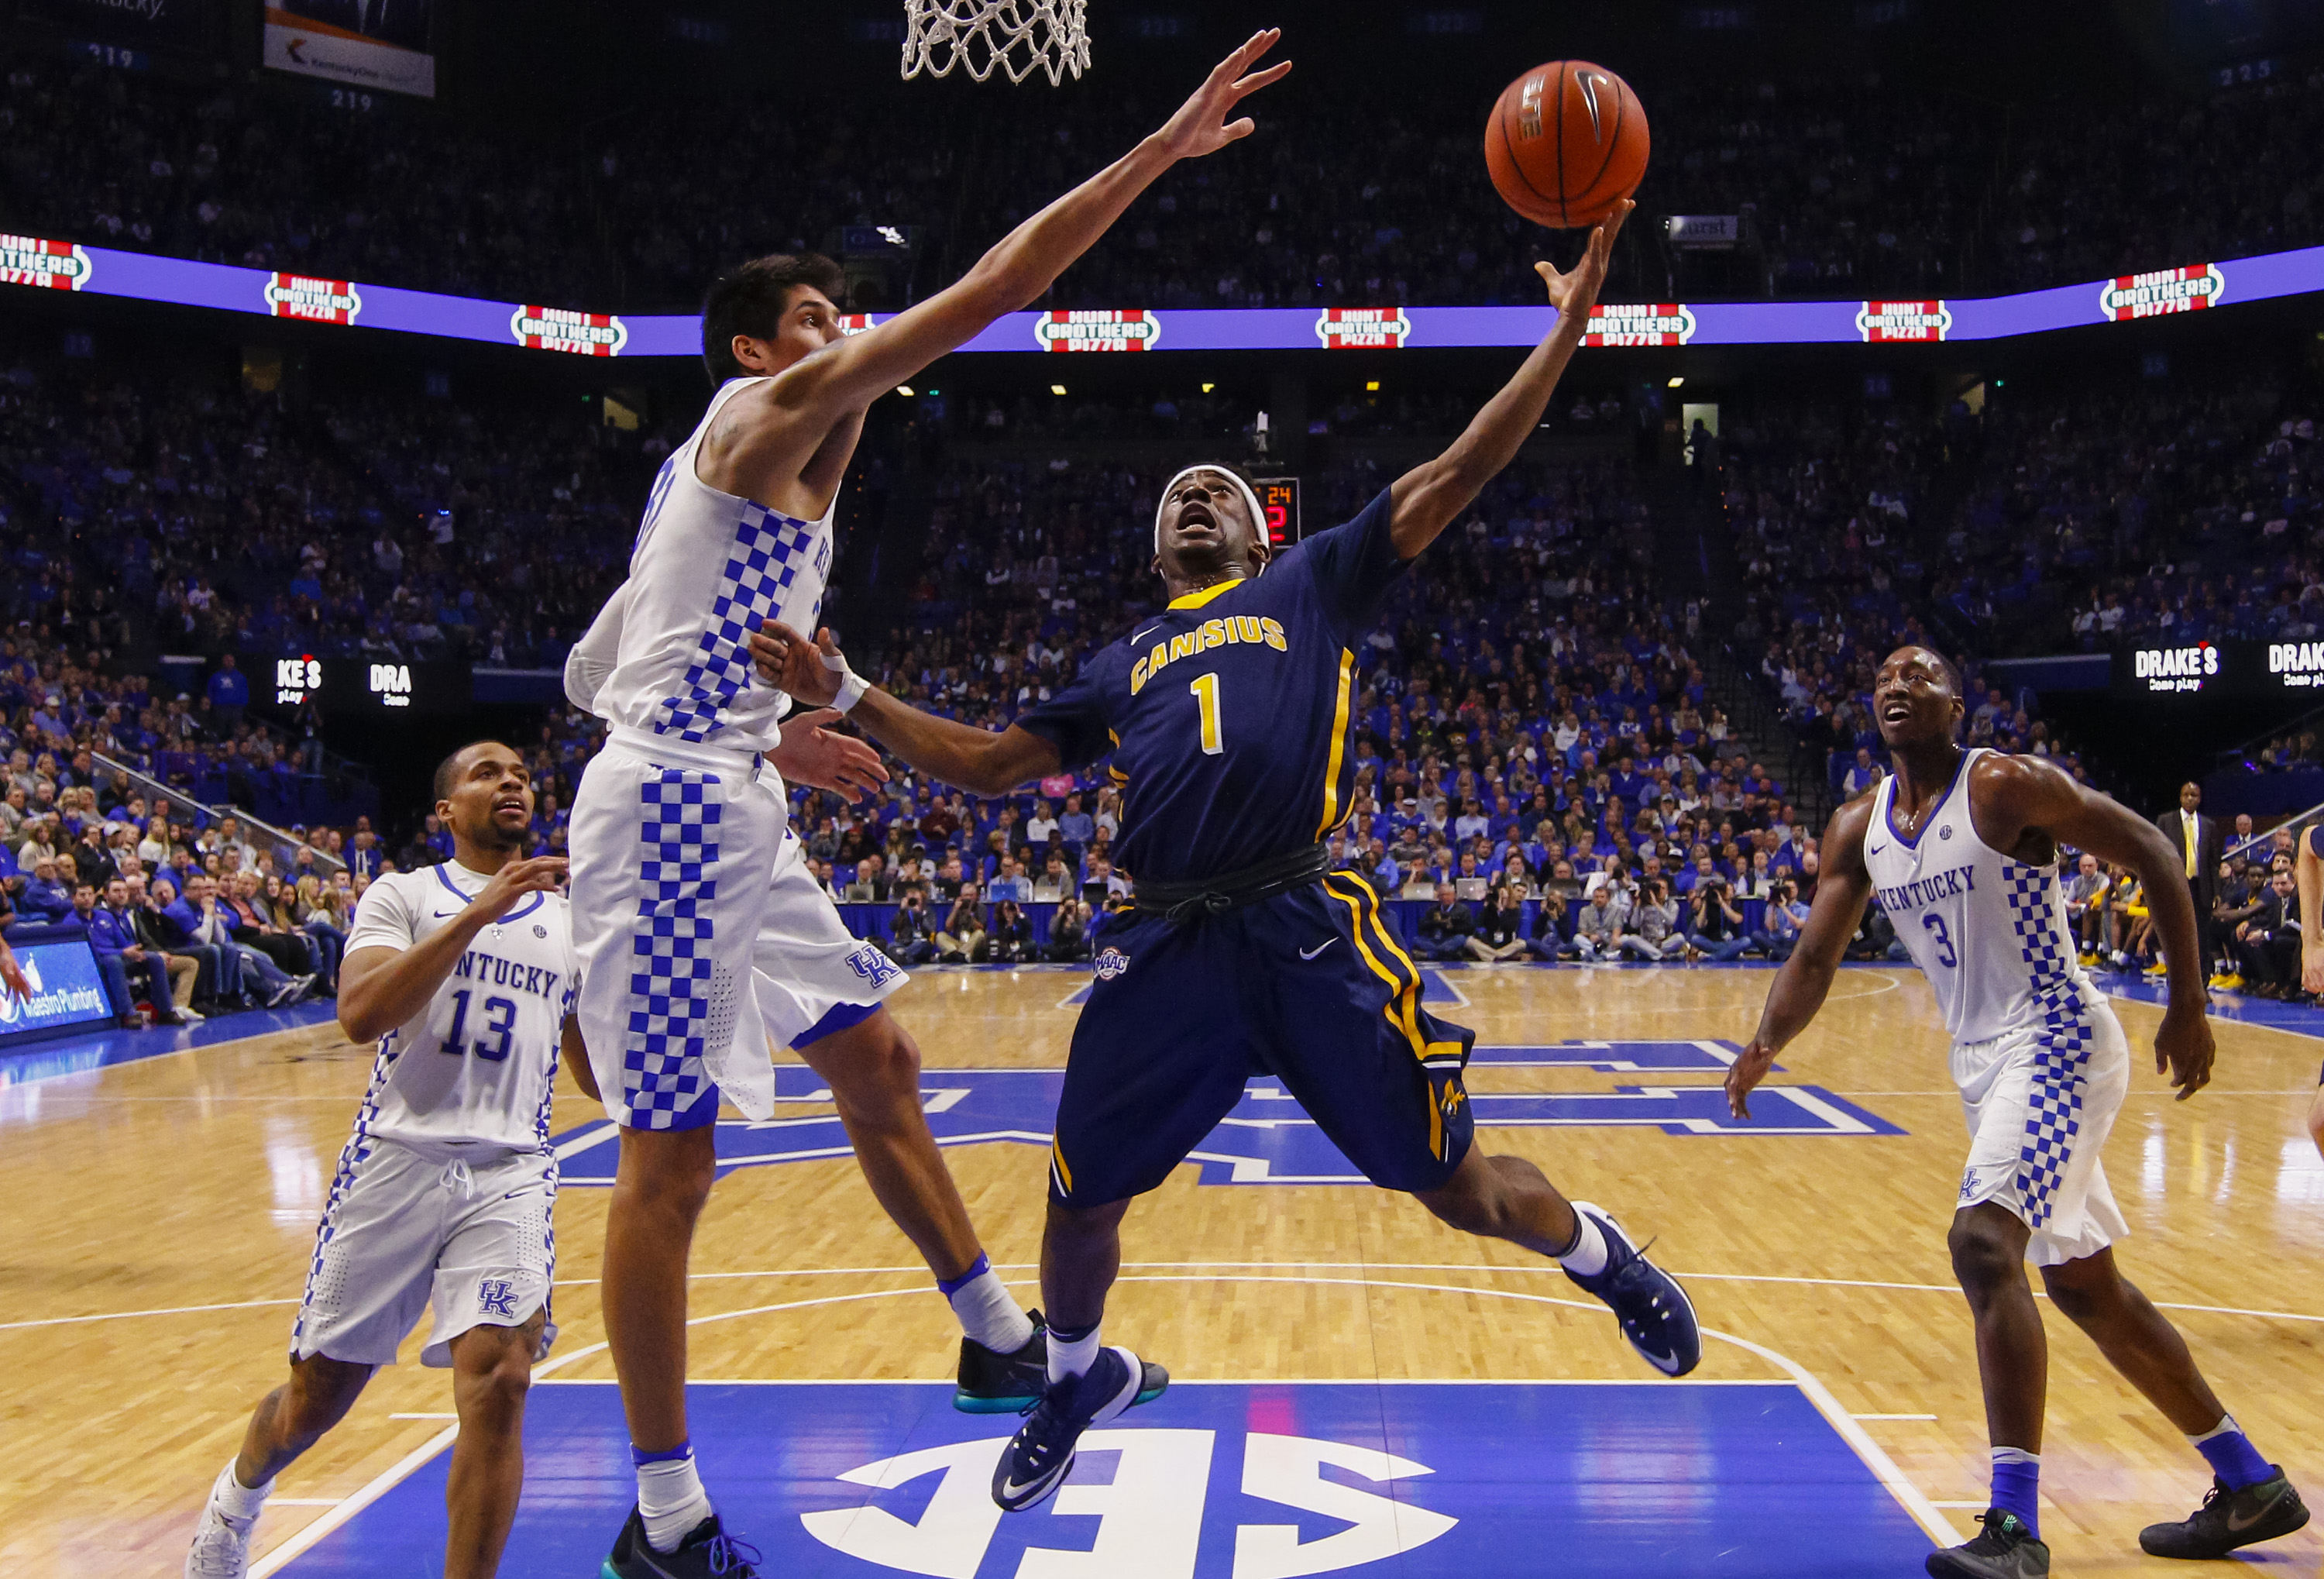 Malik Johnson #1 of the Canisius Golden Griffins shoots the ball as Derek Willis #35 of the Kentucky Wildcats defends at Rupp Arena Stadium on November 13, 2016 in Lexington, Kentucky. Kentucky defeated Canisius 93-69. (Getty Images)